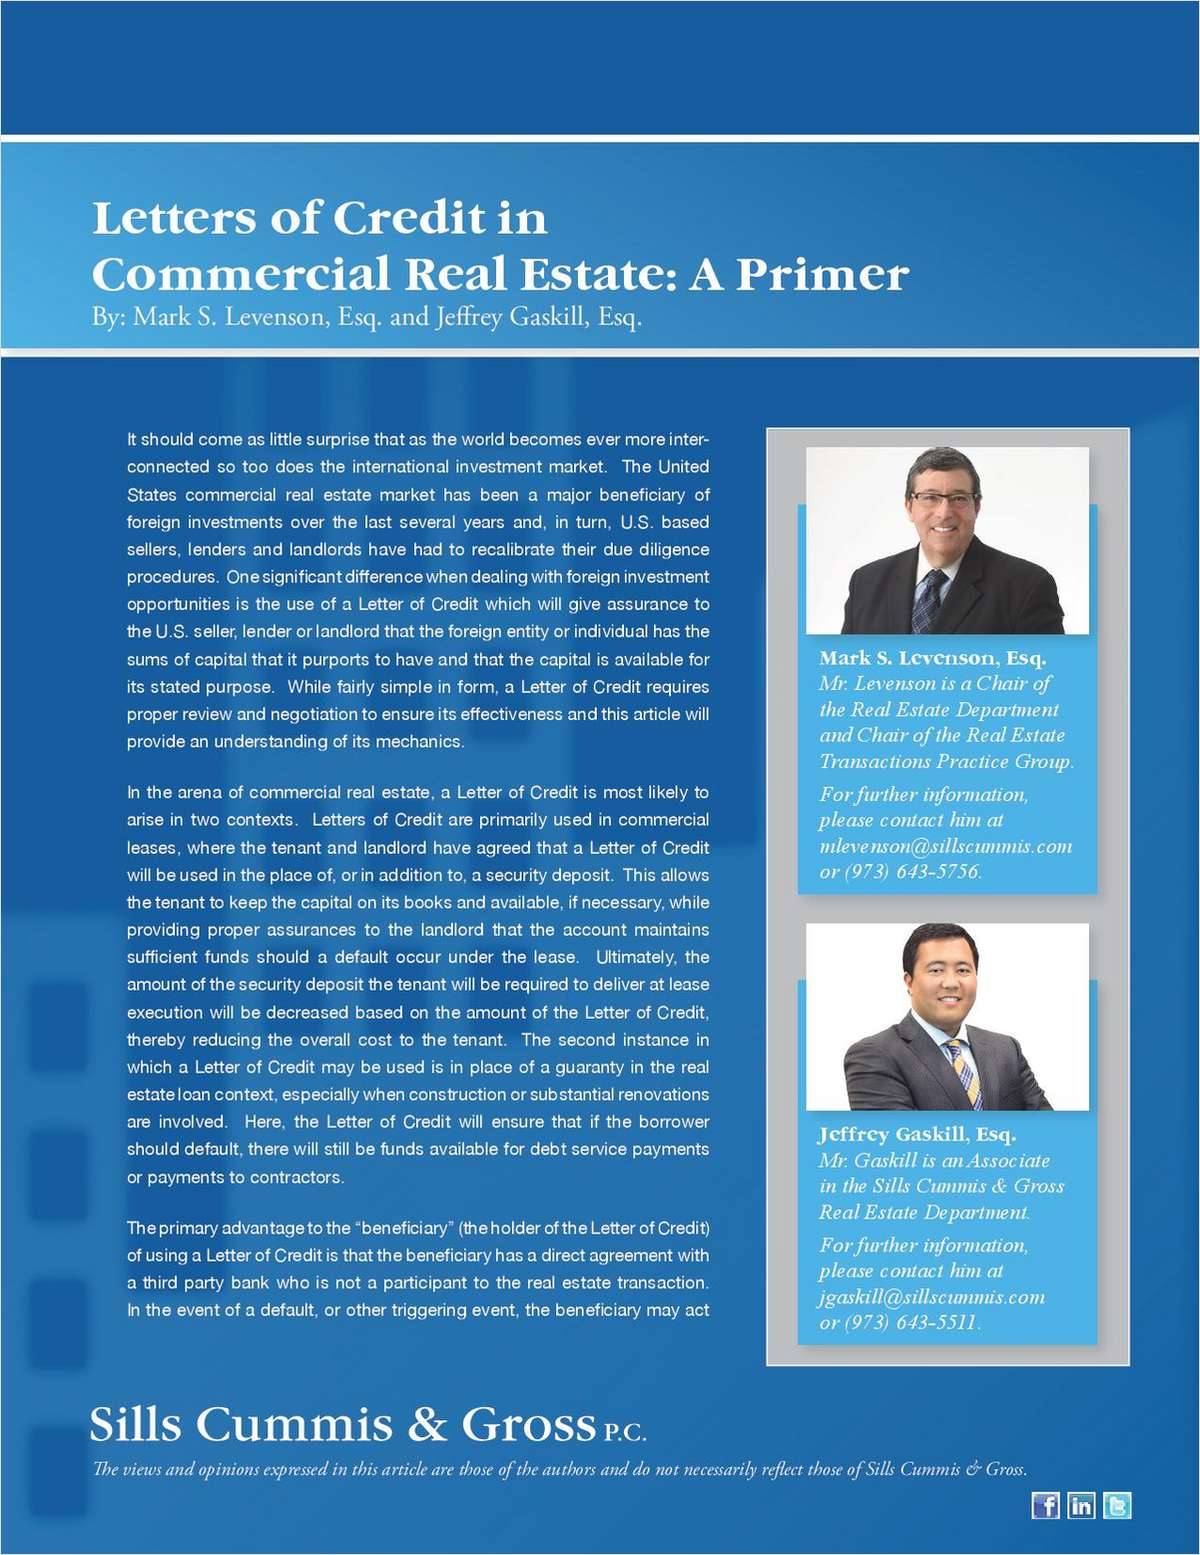 Letters of Credit in Commercial Real Estate: A Primer